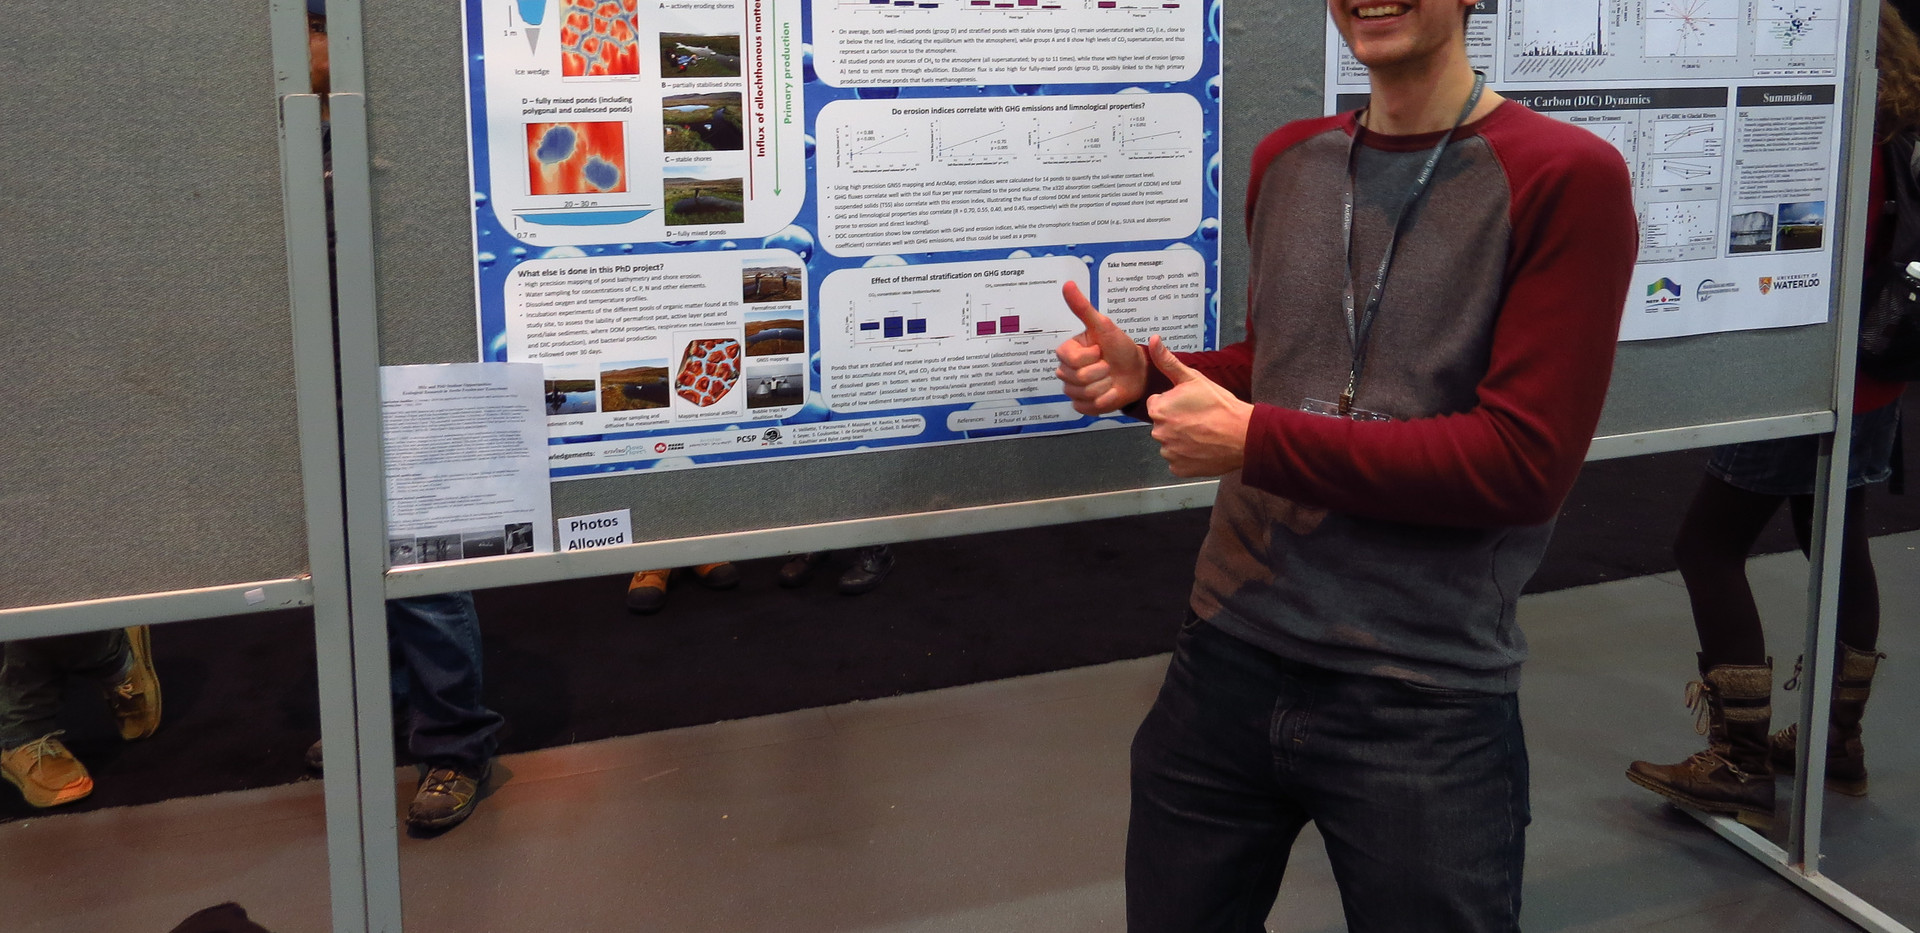 Extra excited poster presenter